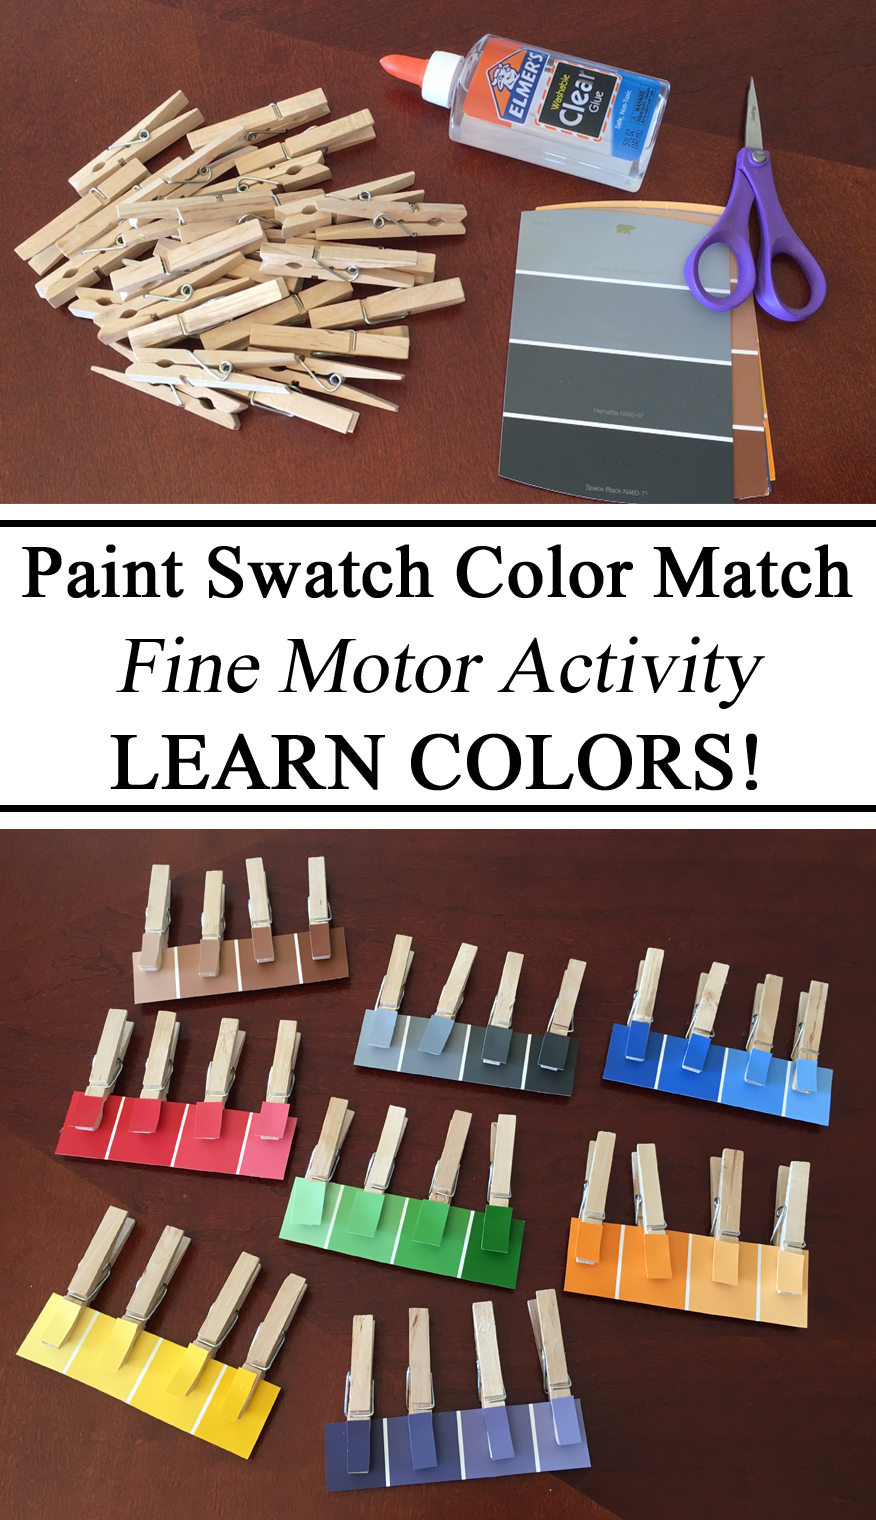 Paint Swatch, Color Matching, Clothespins, Pinning Work, Learning Colors, Pantone, Shades, Toddlers, Fine Motor Skills, Preschool, DIY, Upcycle, Crafts for Kids, Montessori, Waldorf, Homeschool, Homeschooling, Resources for Parents Moms